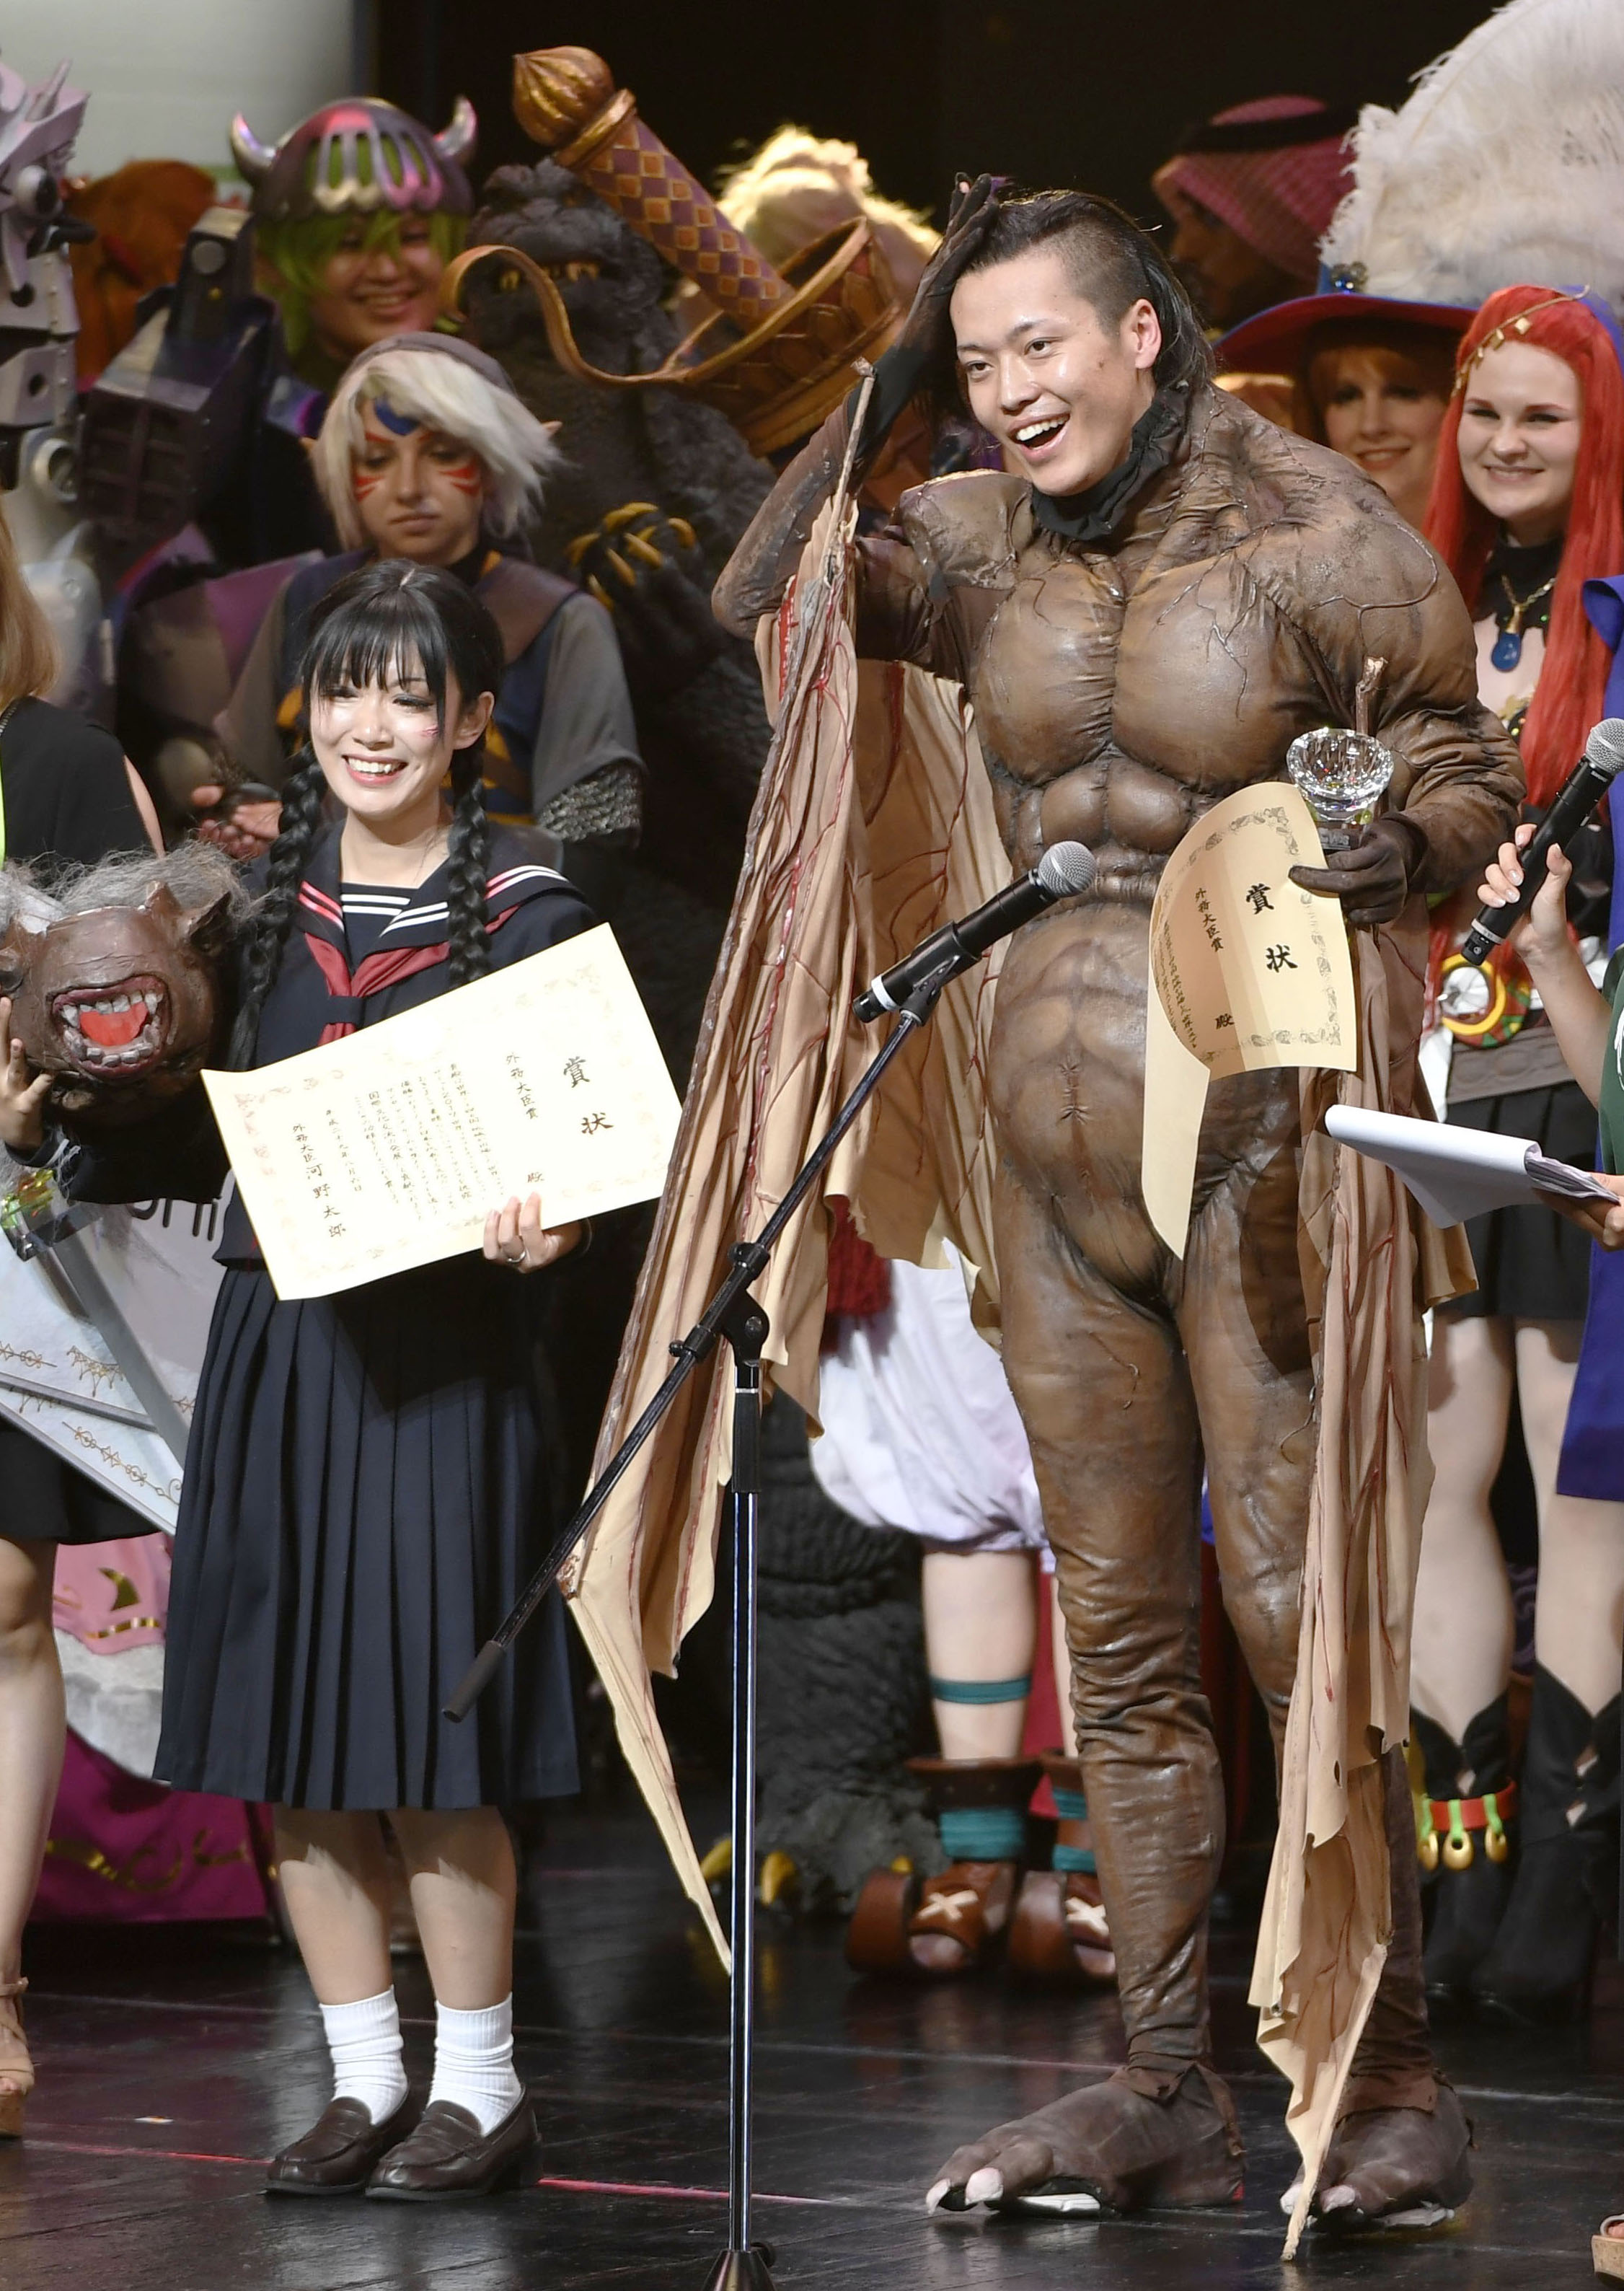 World's cosplay fans gather in Nagoya for annual event